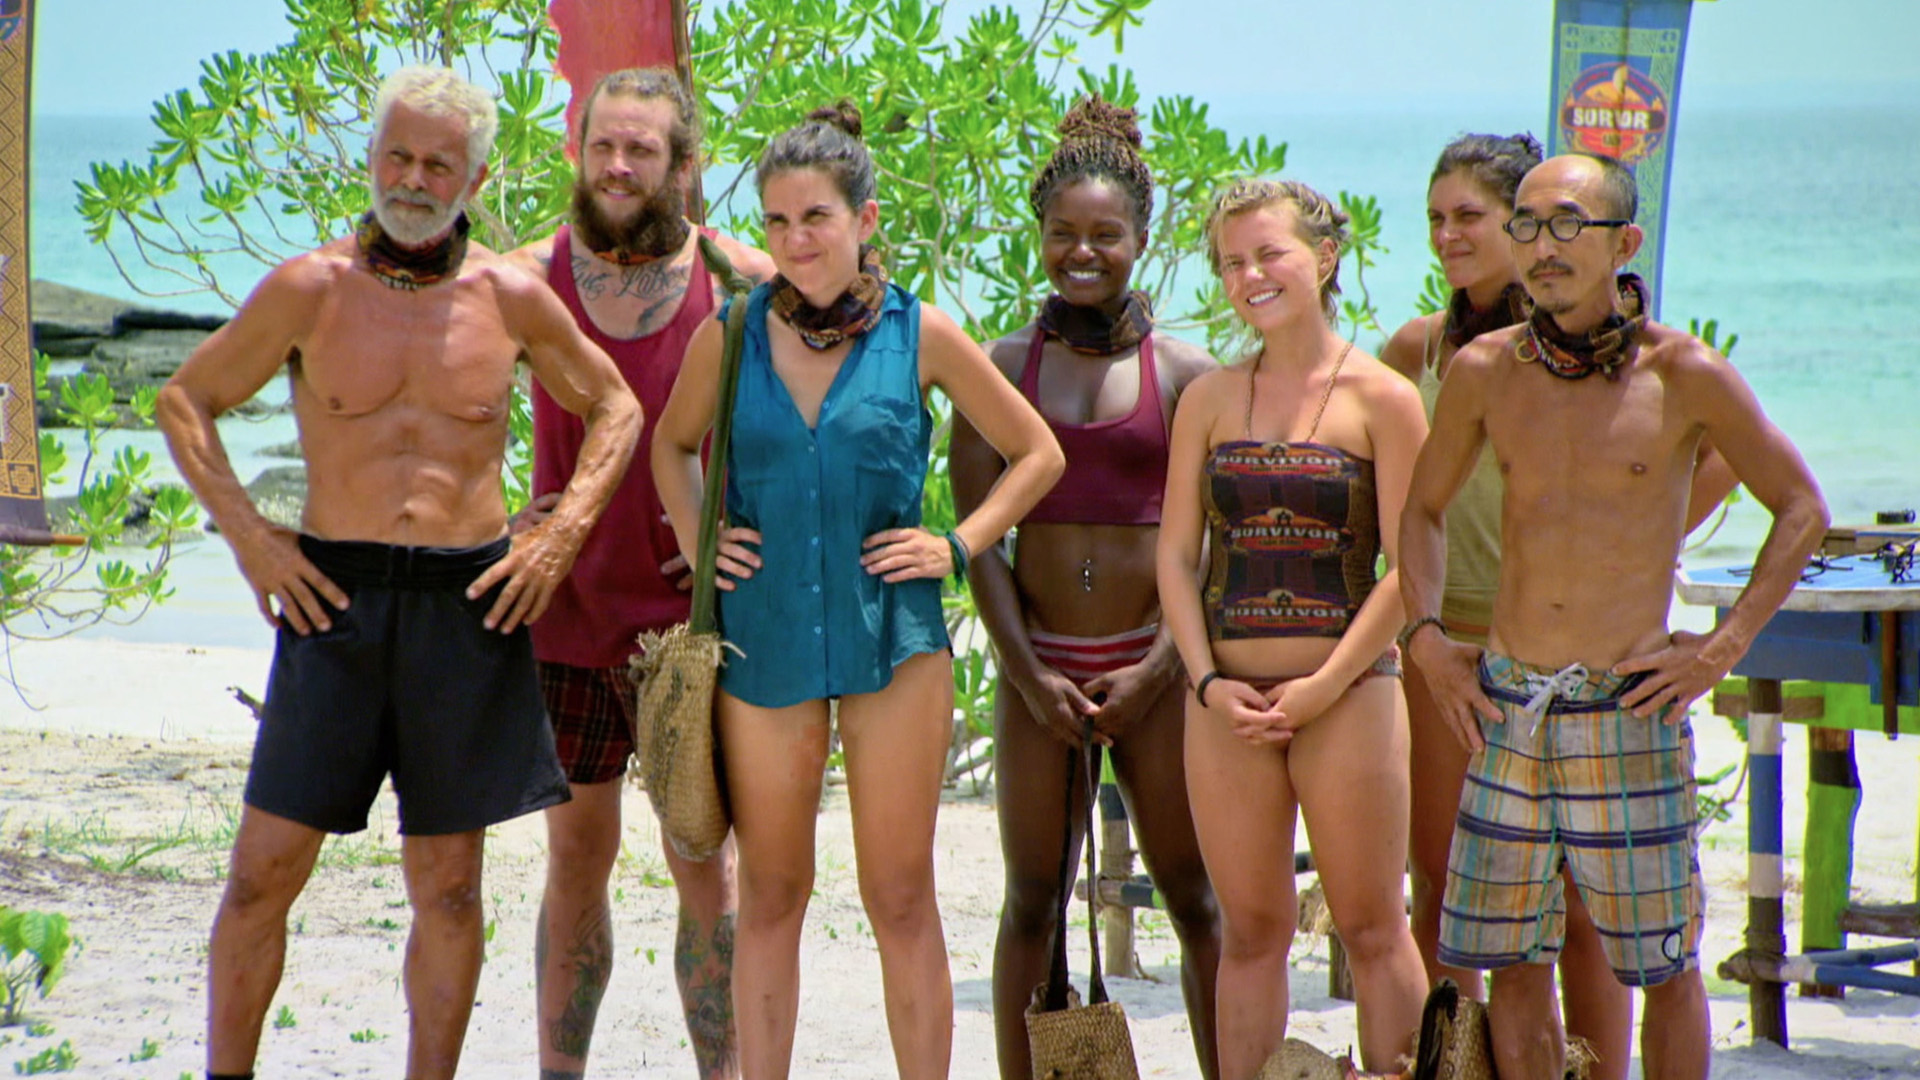 The Survivor: Kaoh Rong castaways are ready to fight for a spot in the Final 6.